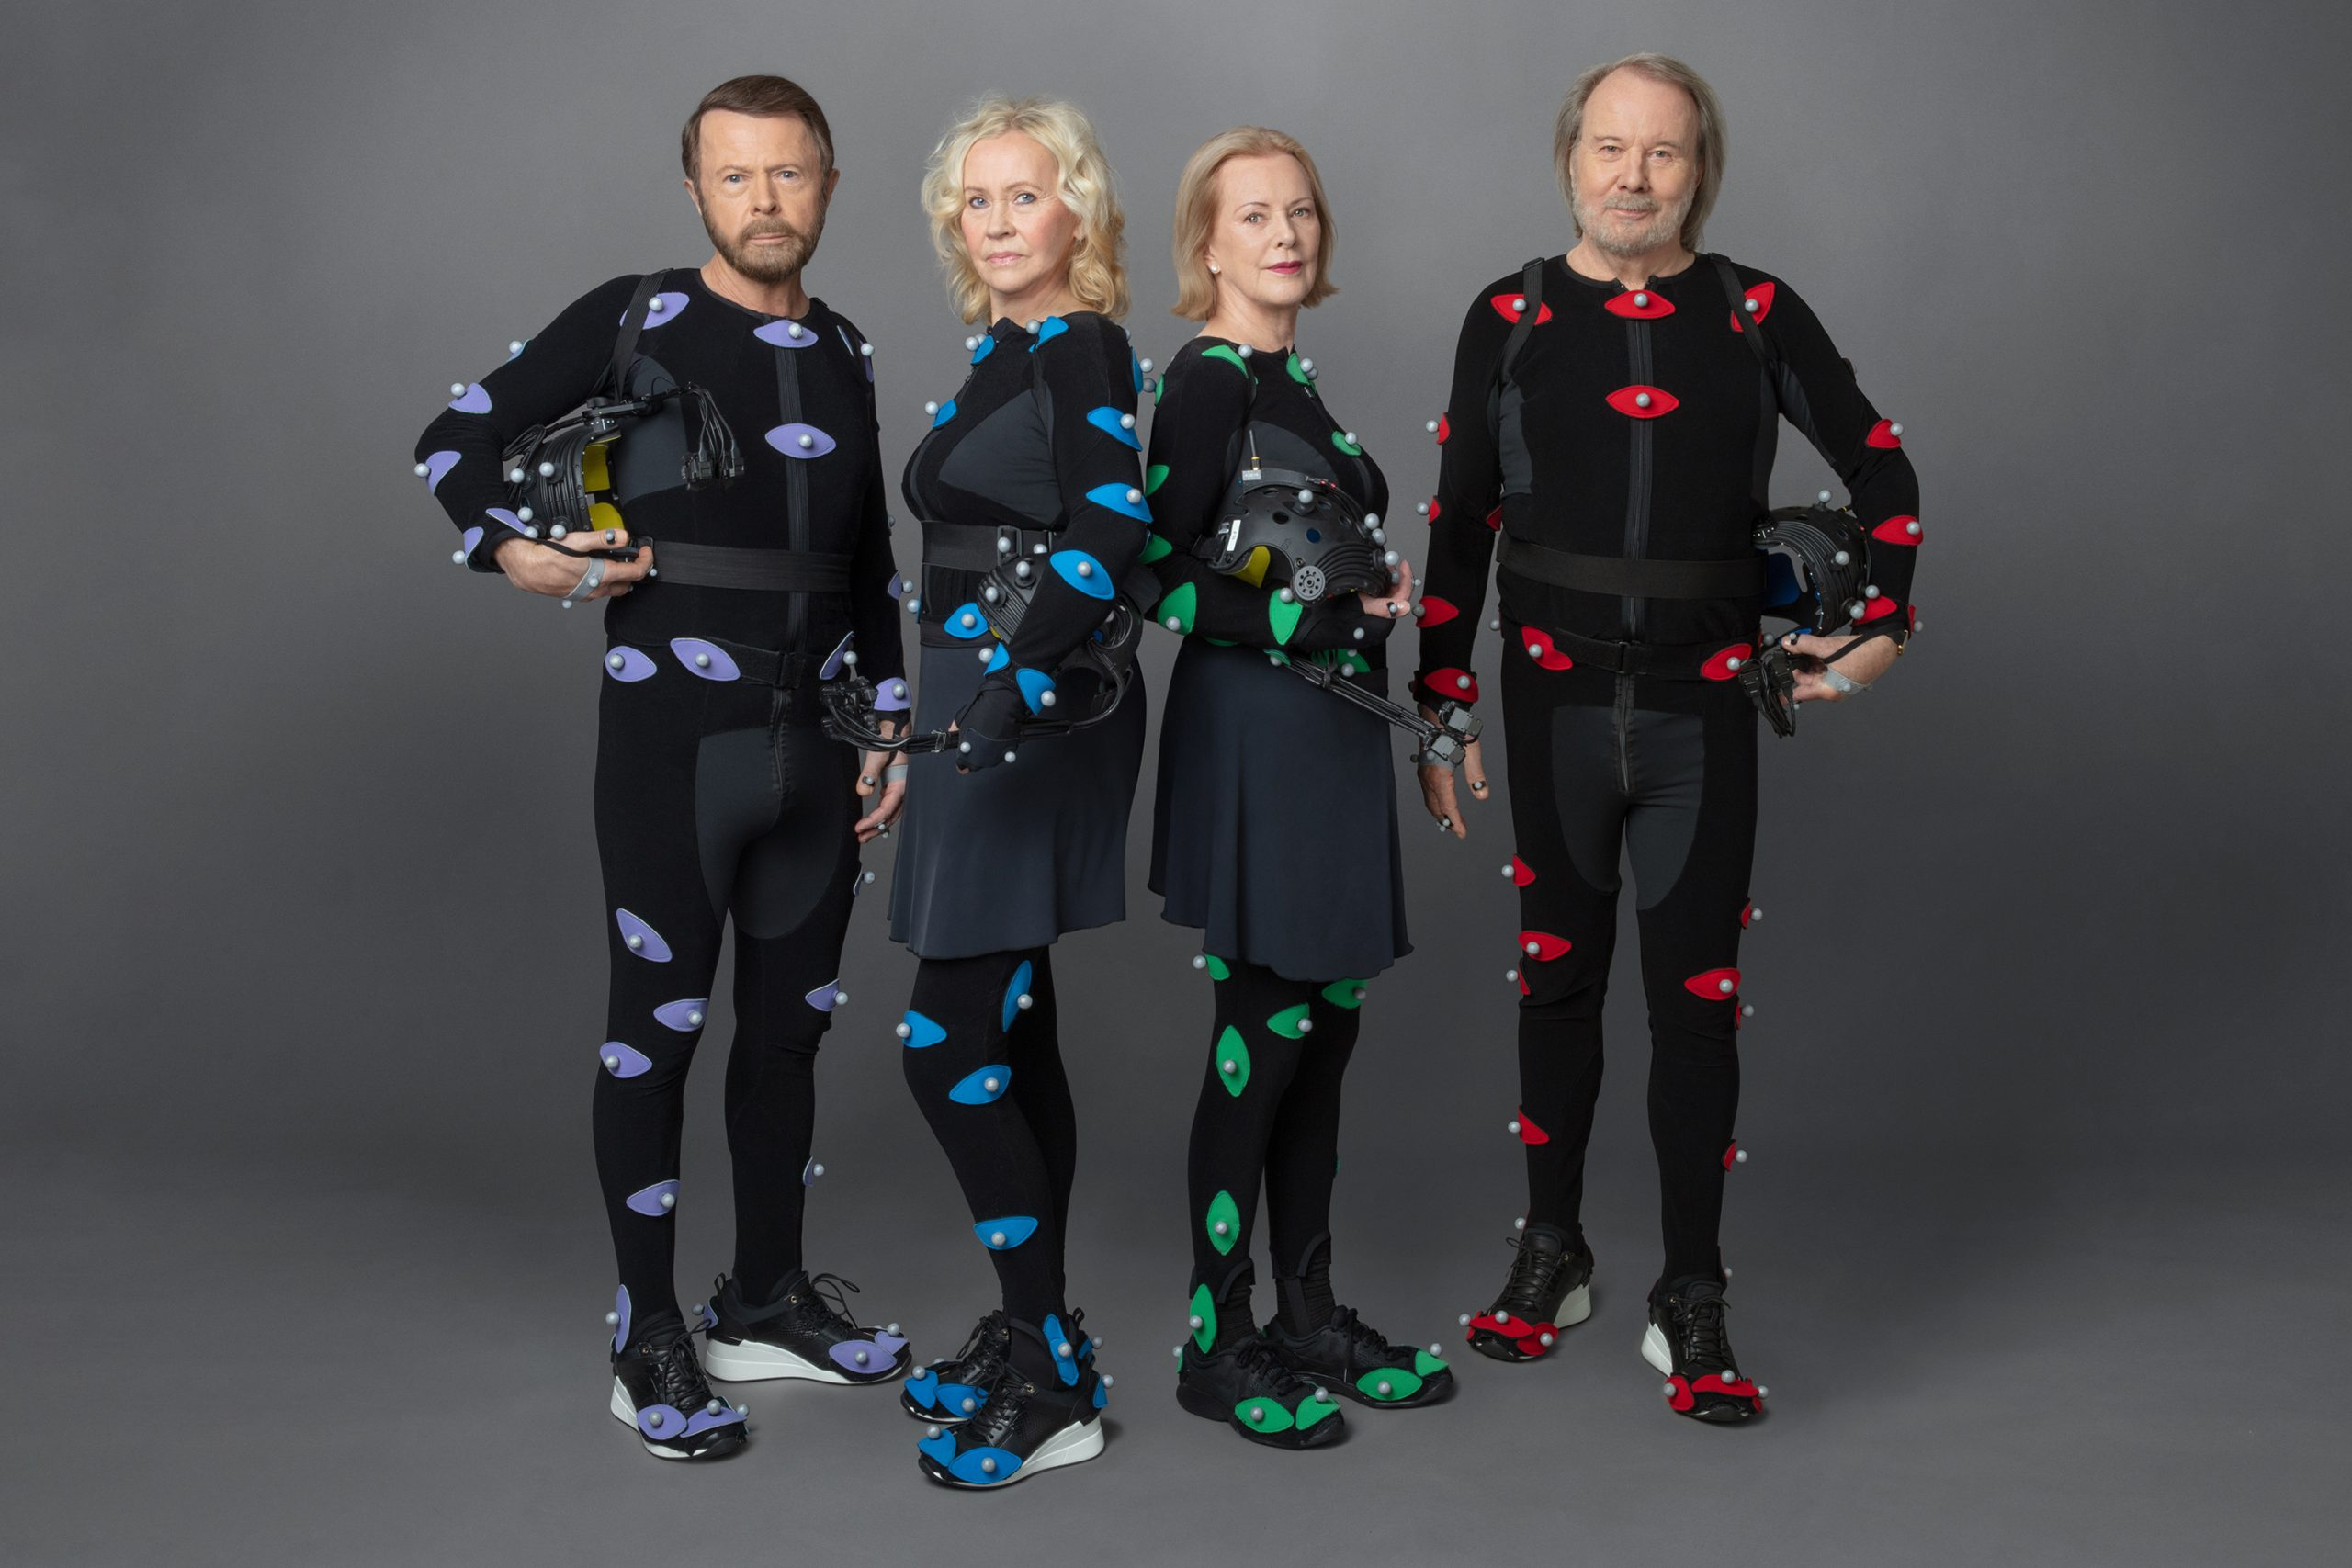 ABBA Mo Cap Suits - (Credit: Baillie Walsh)